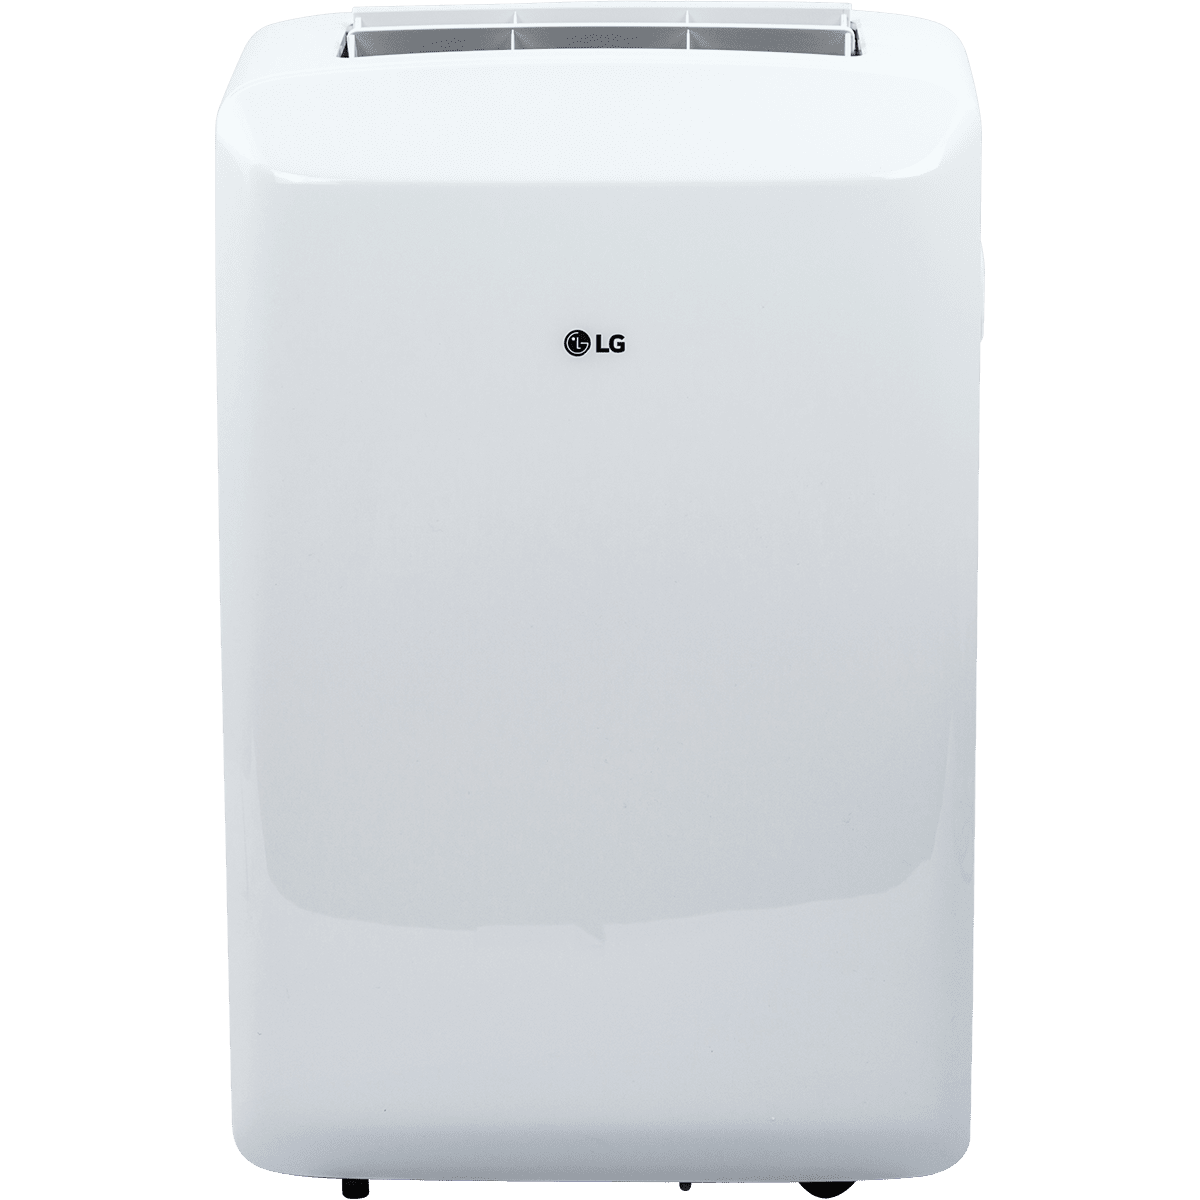 Lg Portable Air Conditioner 8000 Btu Troubleshooting Portable Radio Unit Portable Water Heater Reviews Portable Hard Drive Dell: LG LP0817WSR Portable AC - Free Shipping